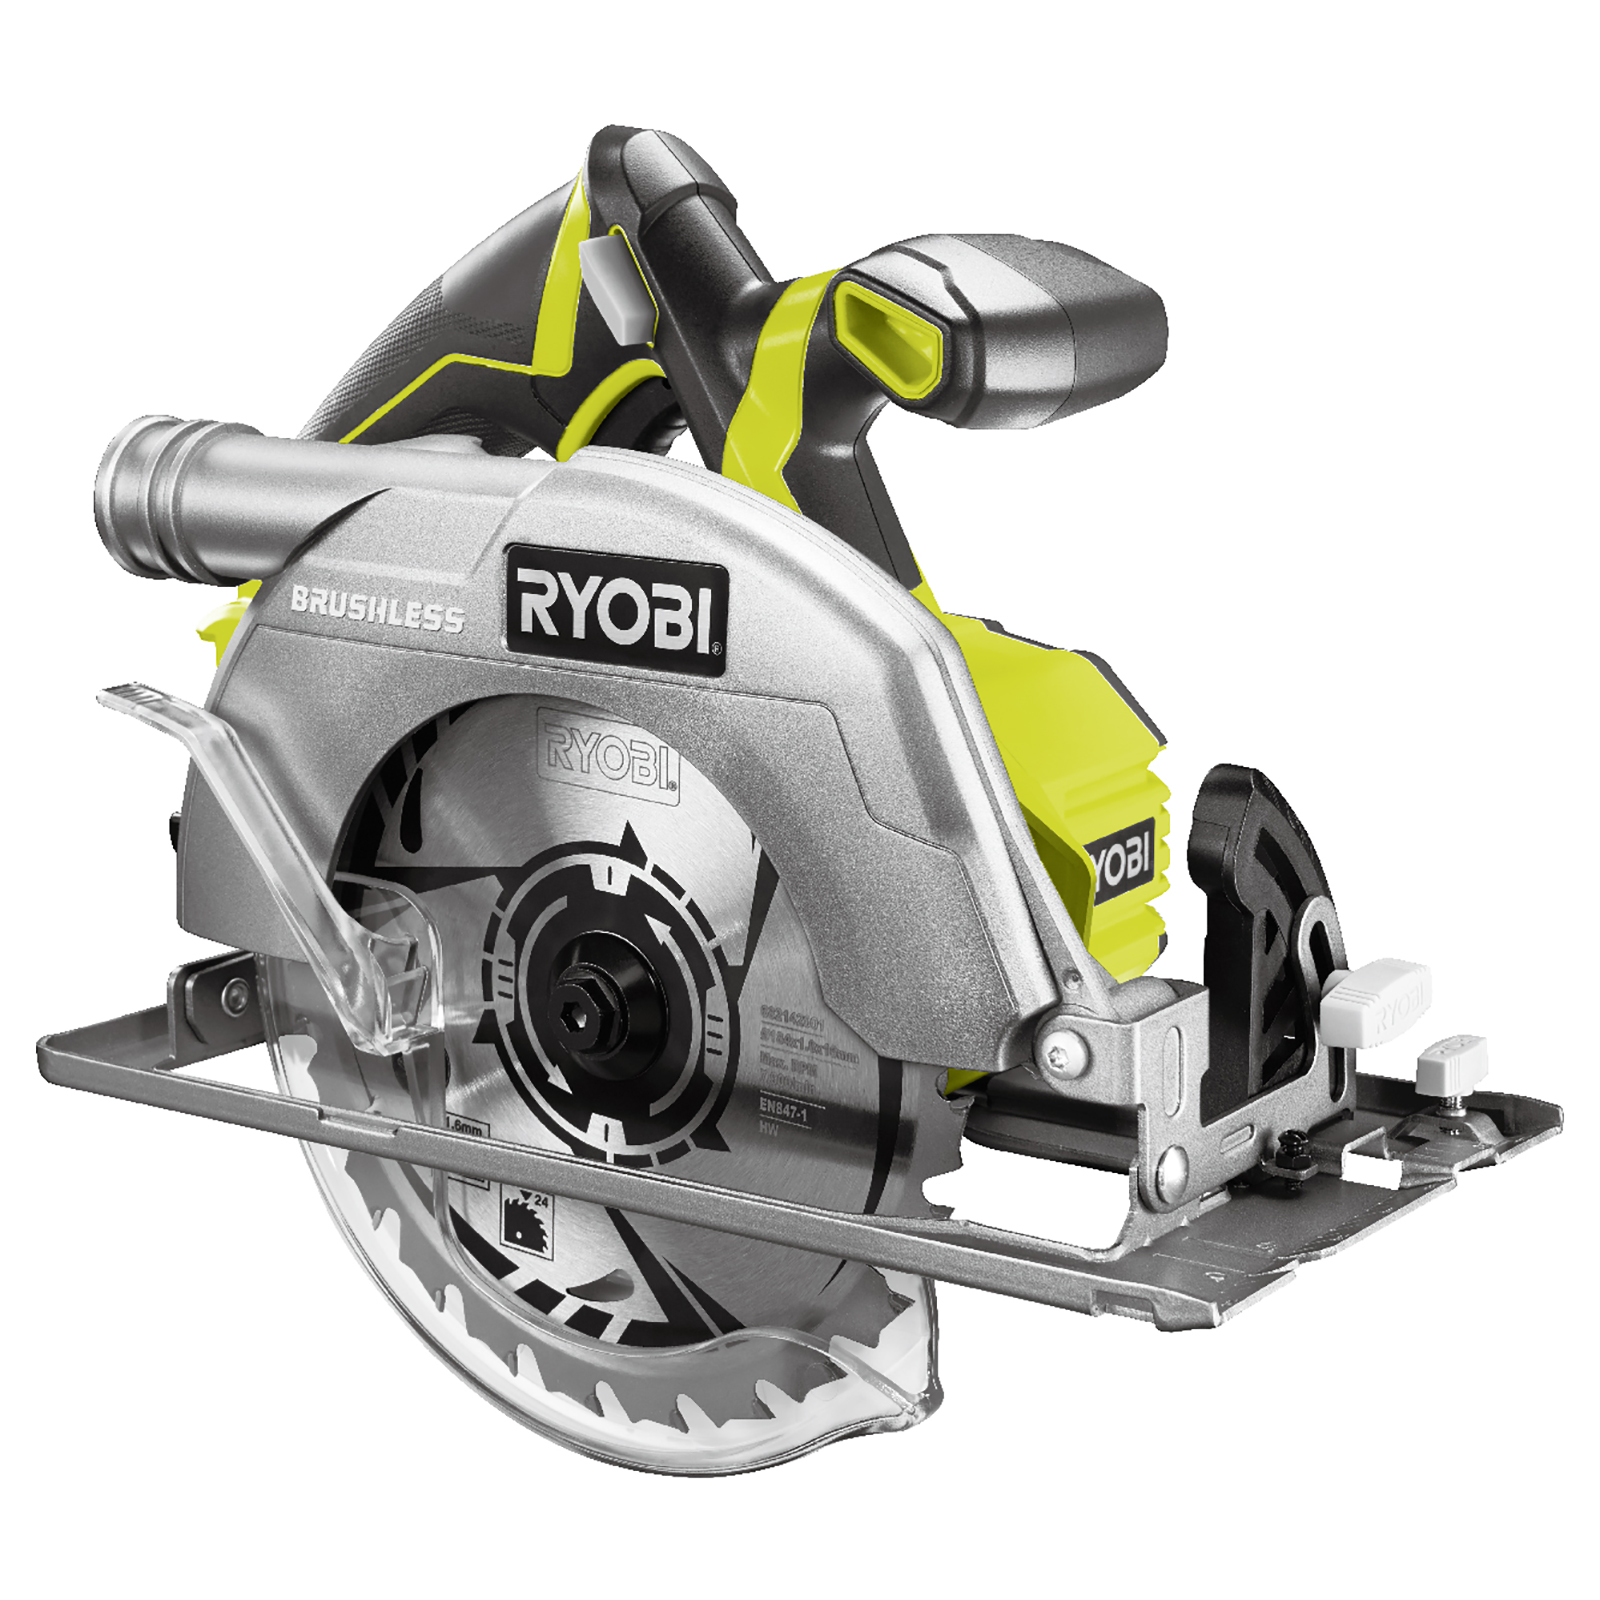 Ryobi 18v 7 14 inch brushless circular saw spotted tool craze last week we learned about a new ryobi 18v brushless angle grinder which is impressive news from ryobi they are in a relentless mission as are other greentooth